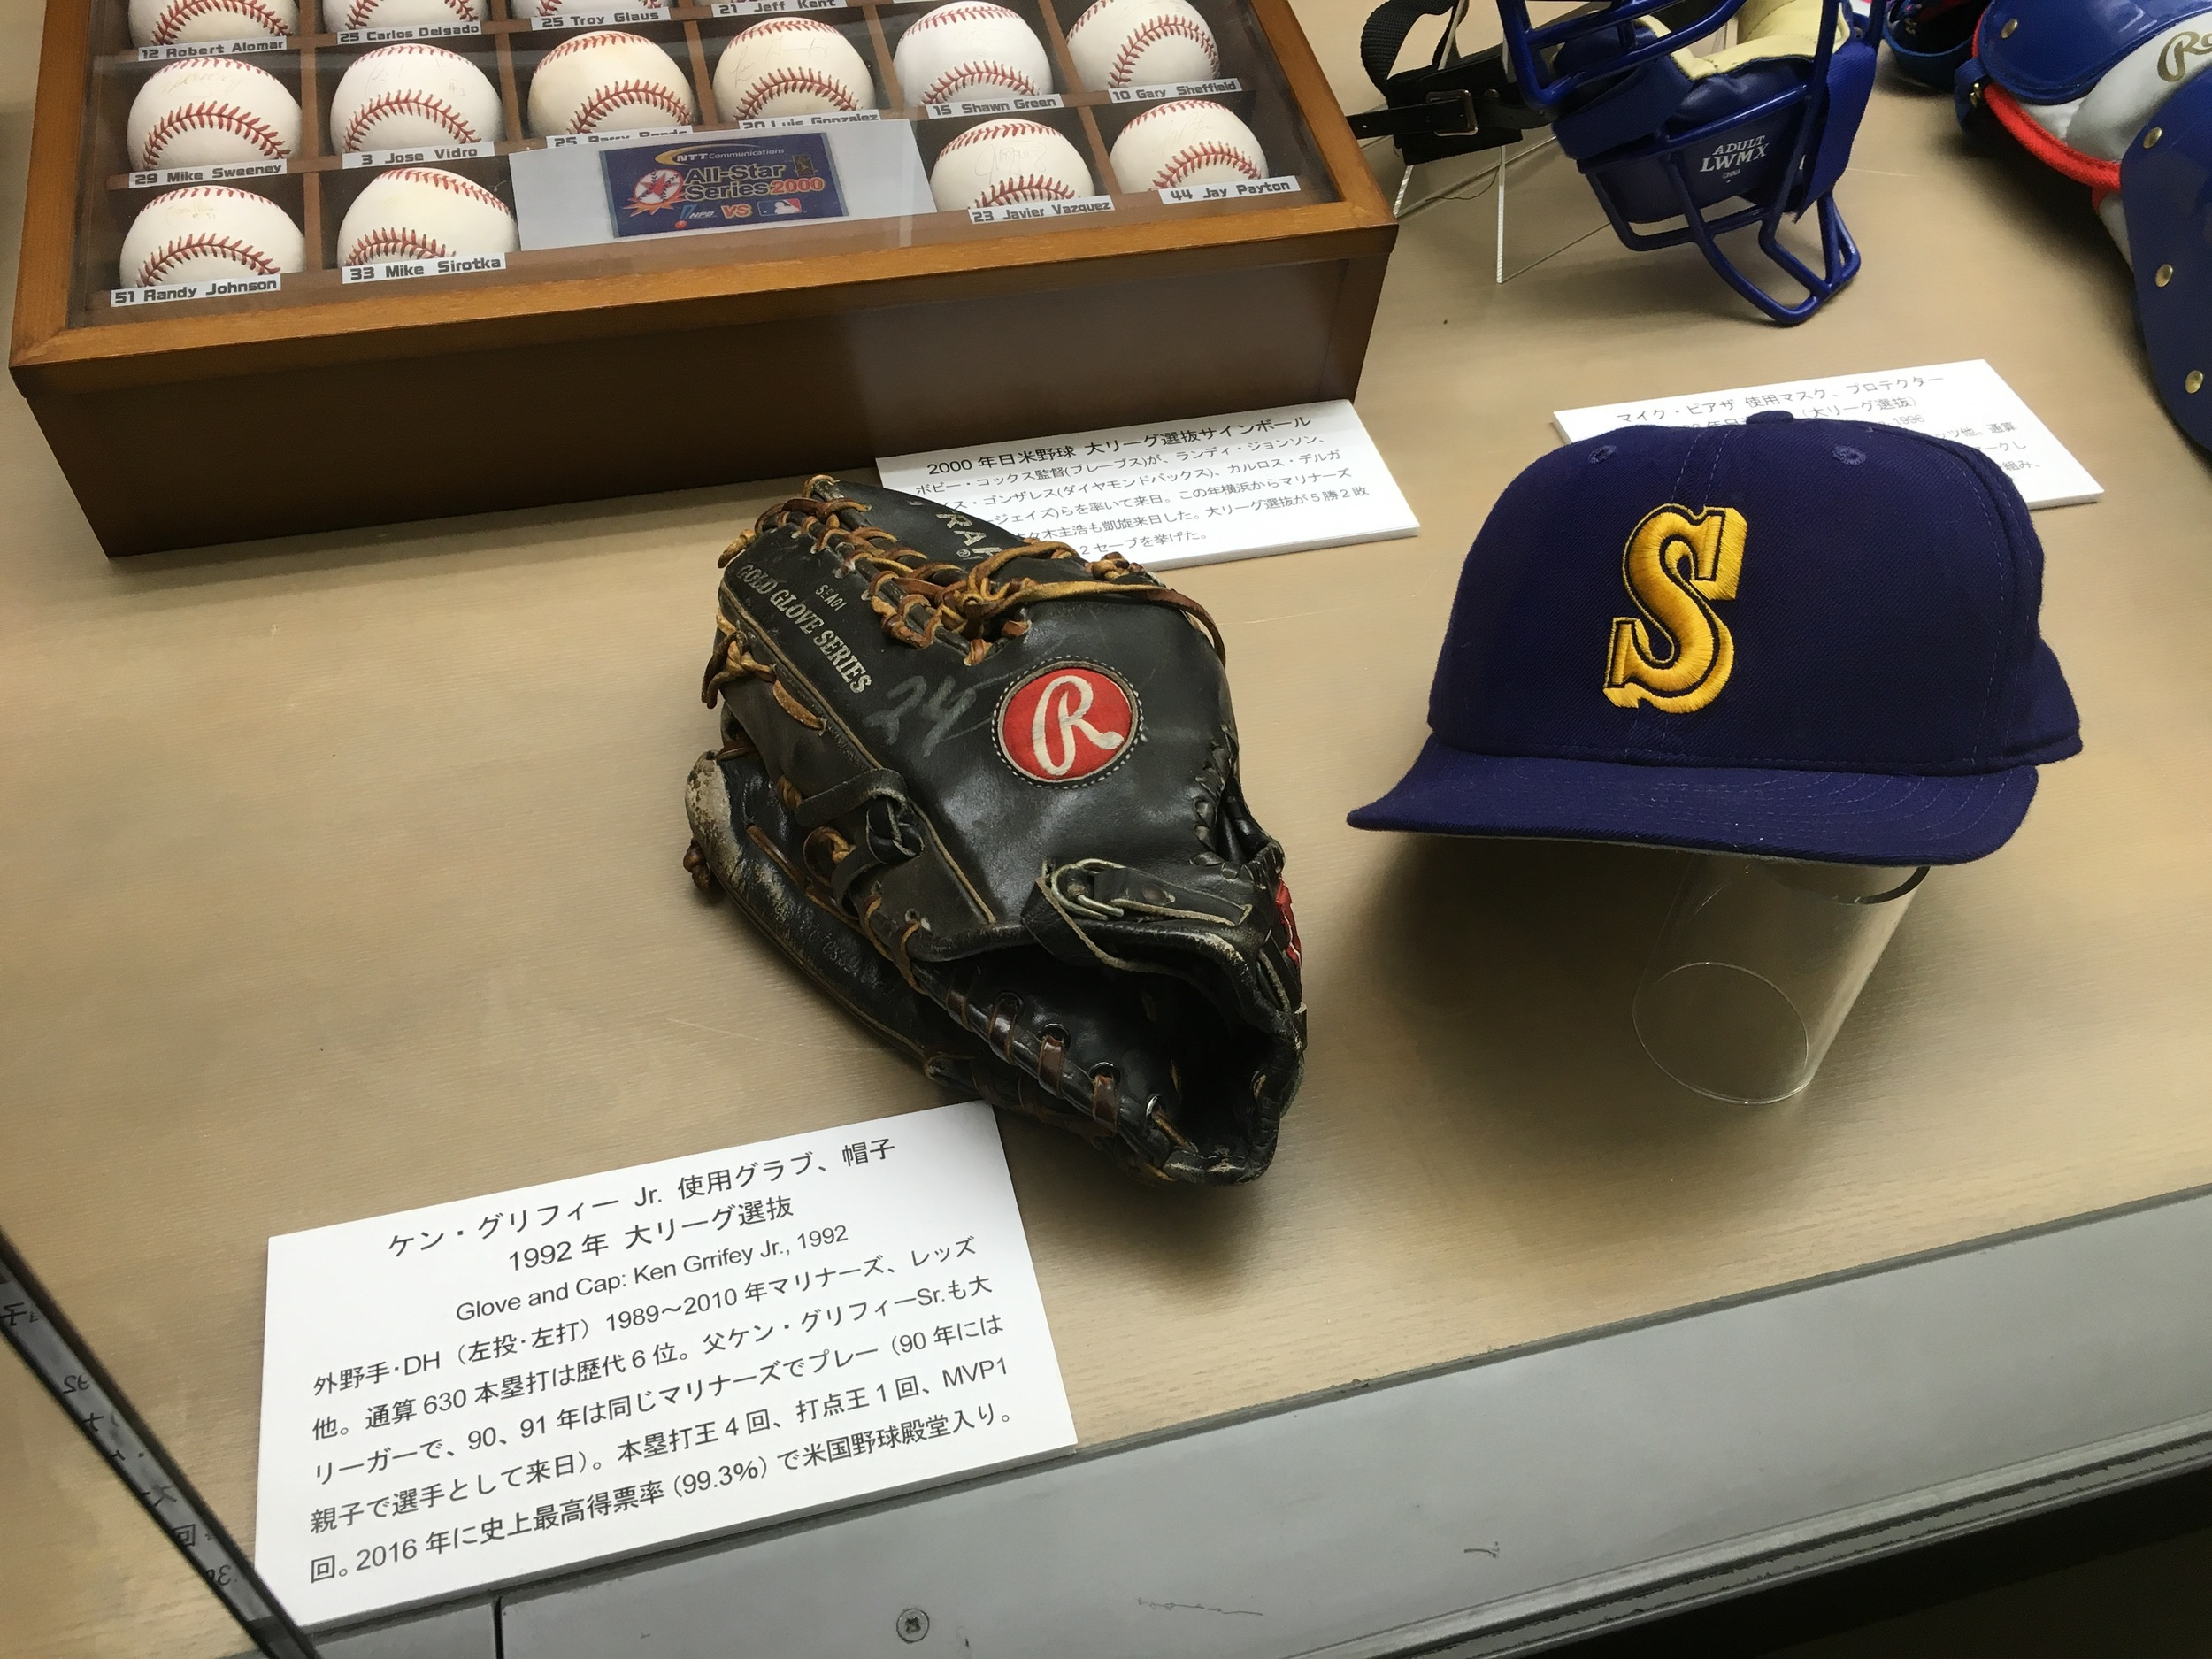 Oh, just the Kid's hat and glove from 1992. No big deal.